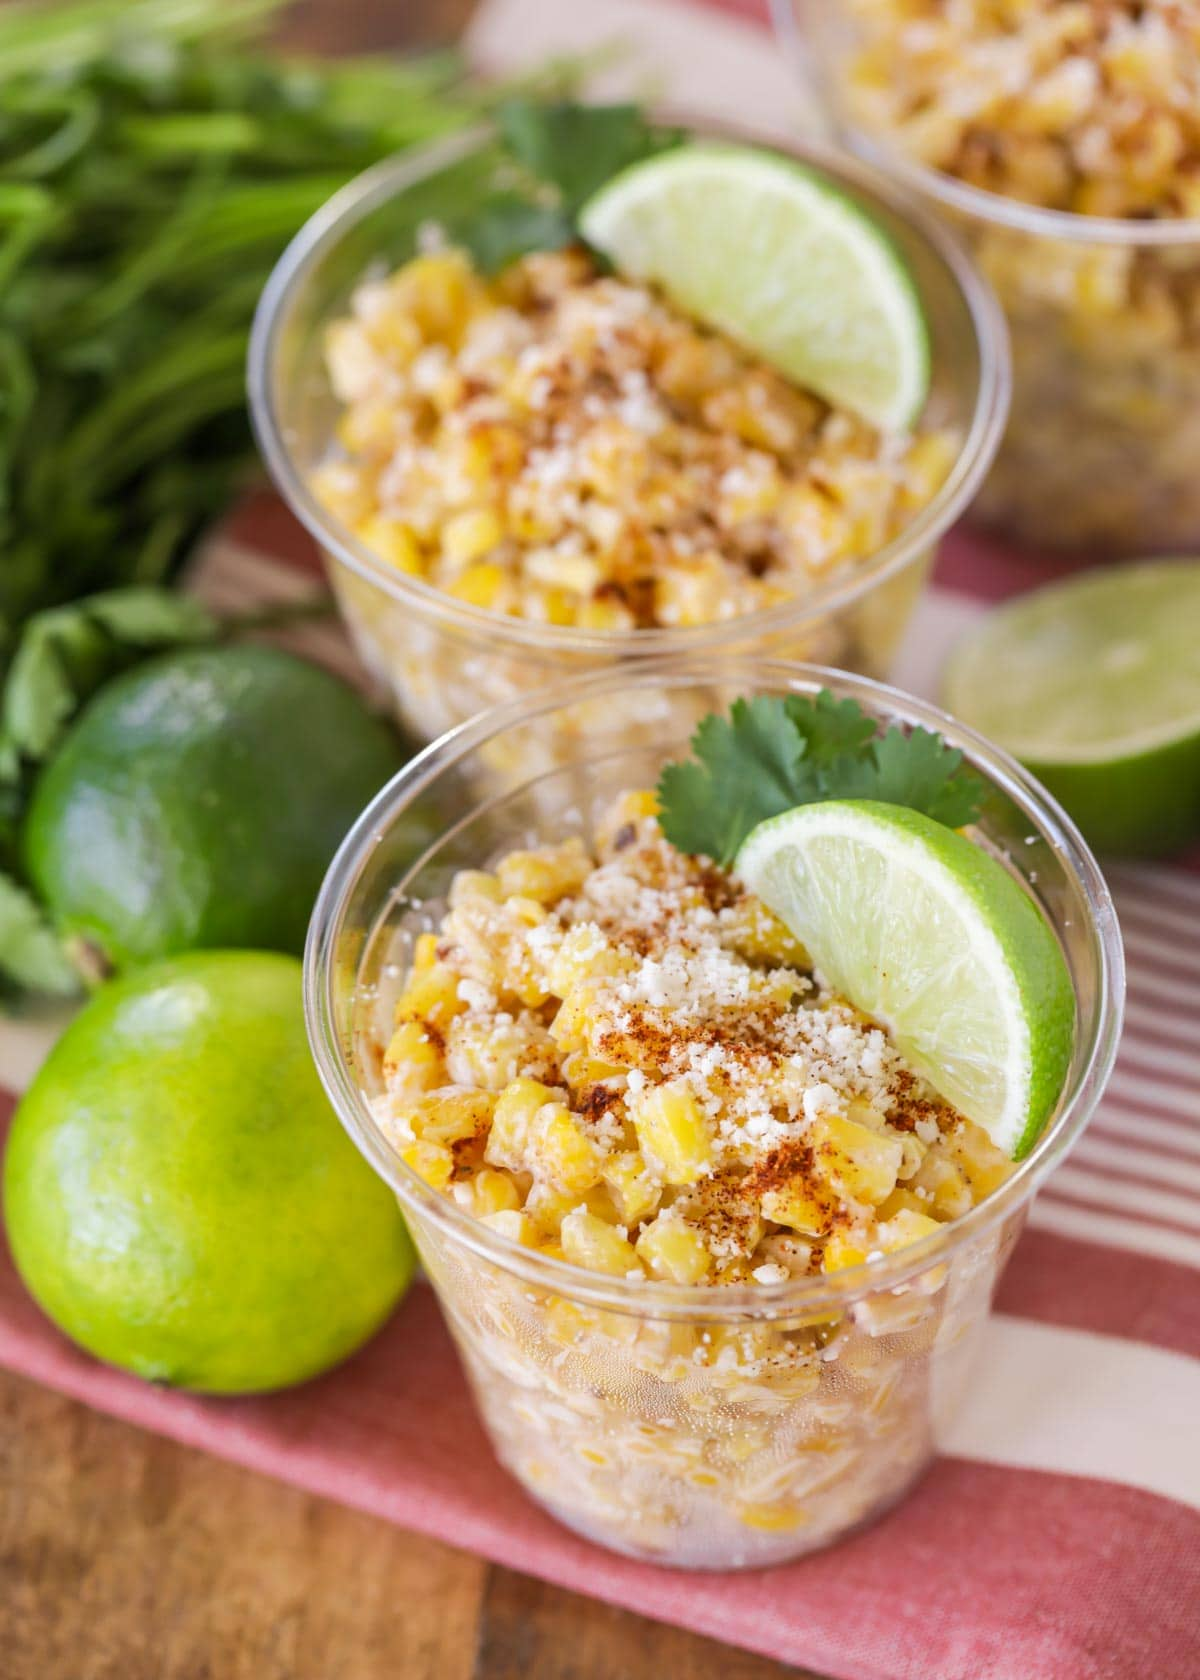 Corn esquites in a plastic cup with lime and cilantro